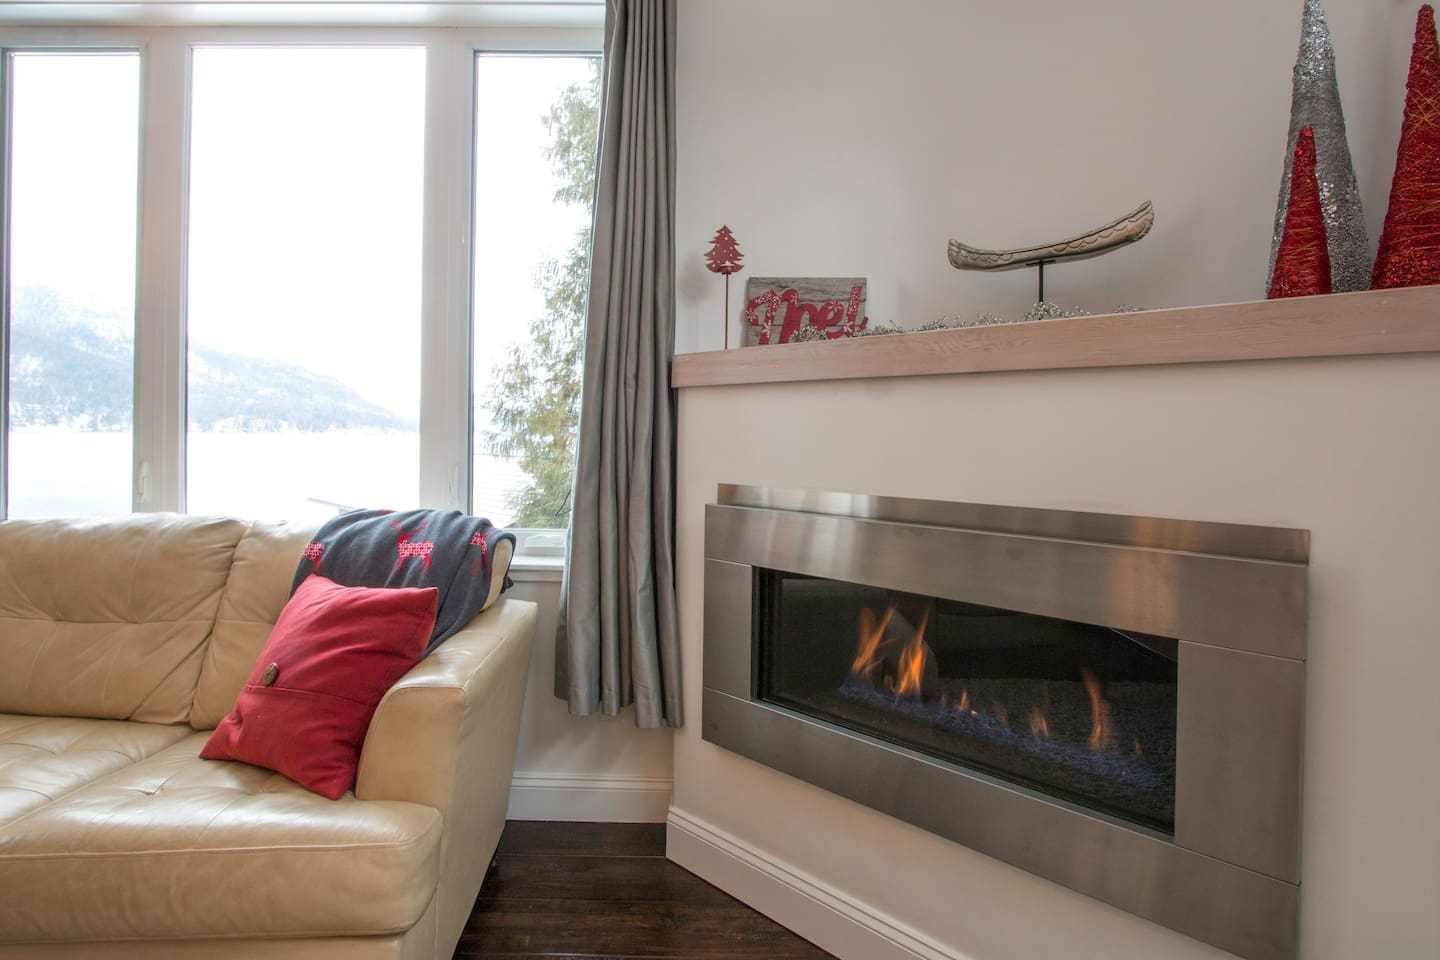 Zoë's Lighthouse, so awesome year round! Warm up by the fireplace after a fun day hiking in the autumn or enjoying the  ski slopes at Red Resorts.